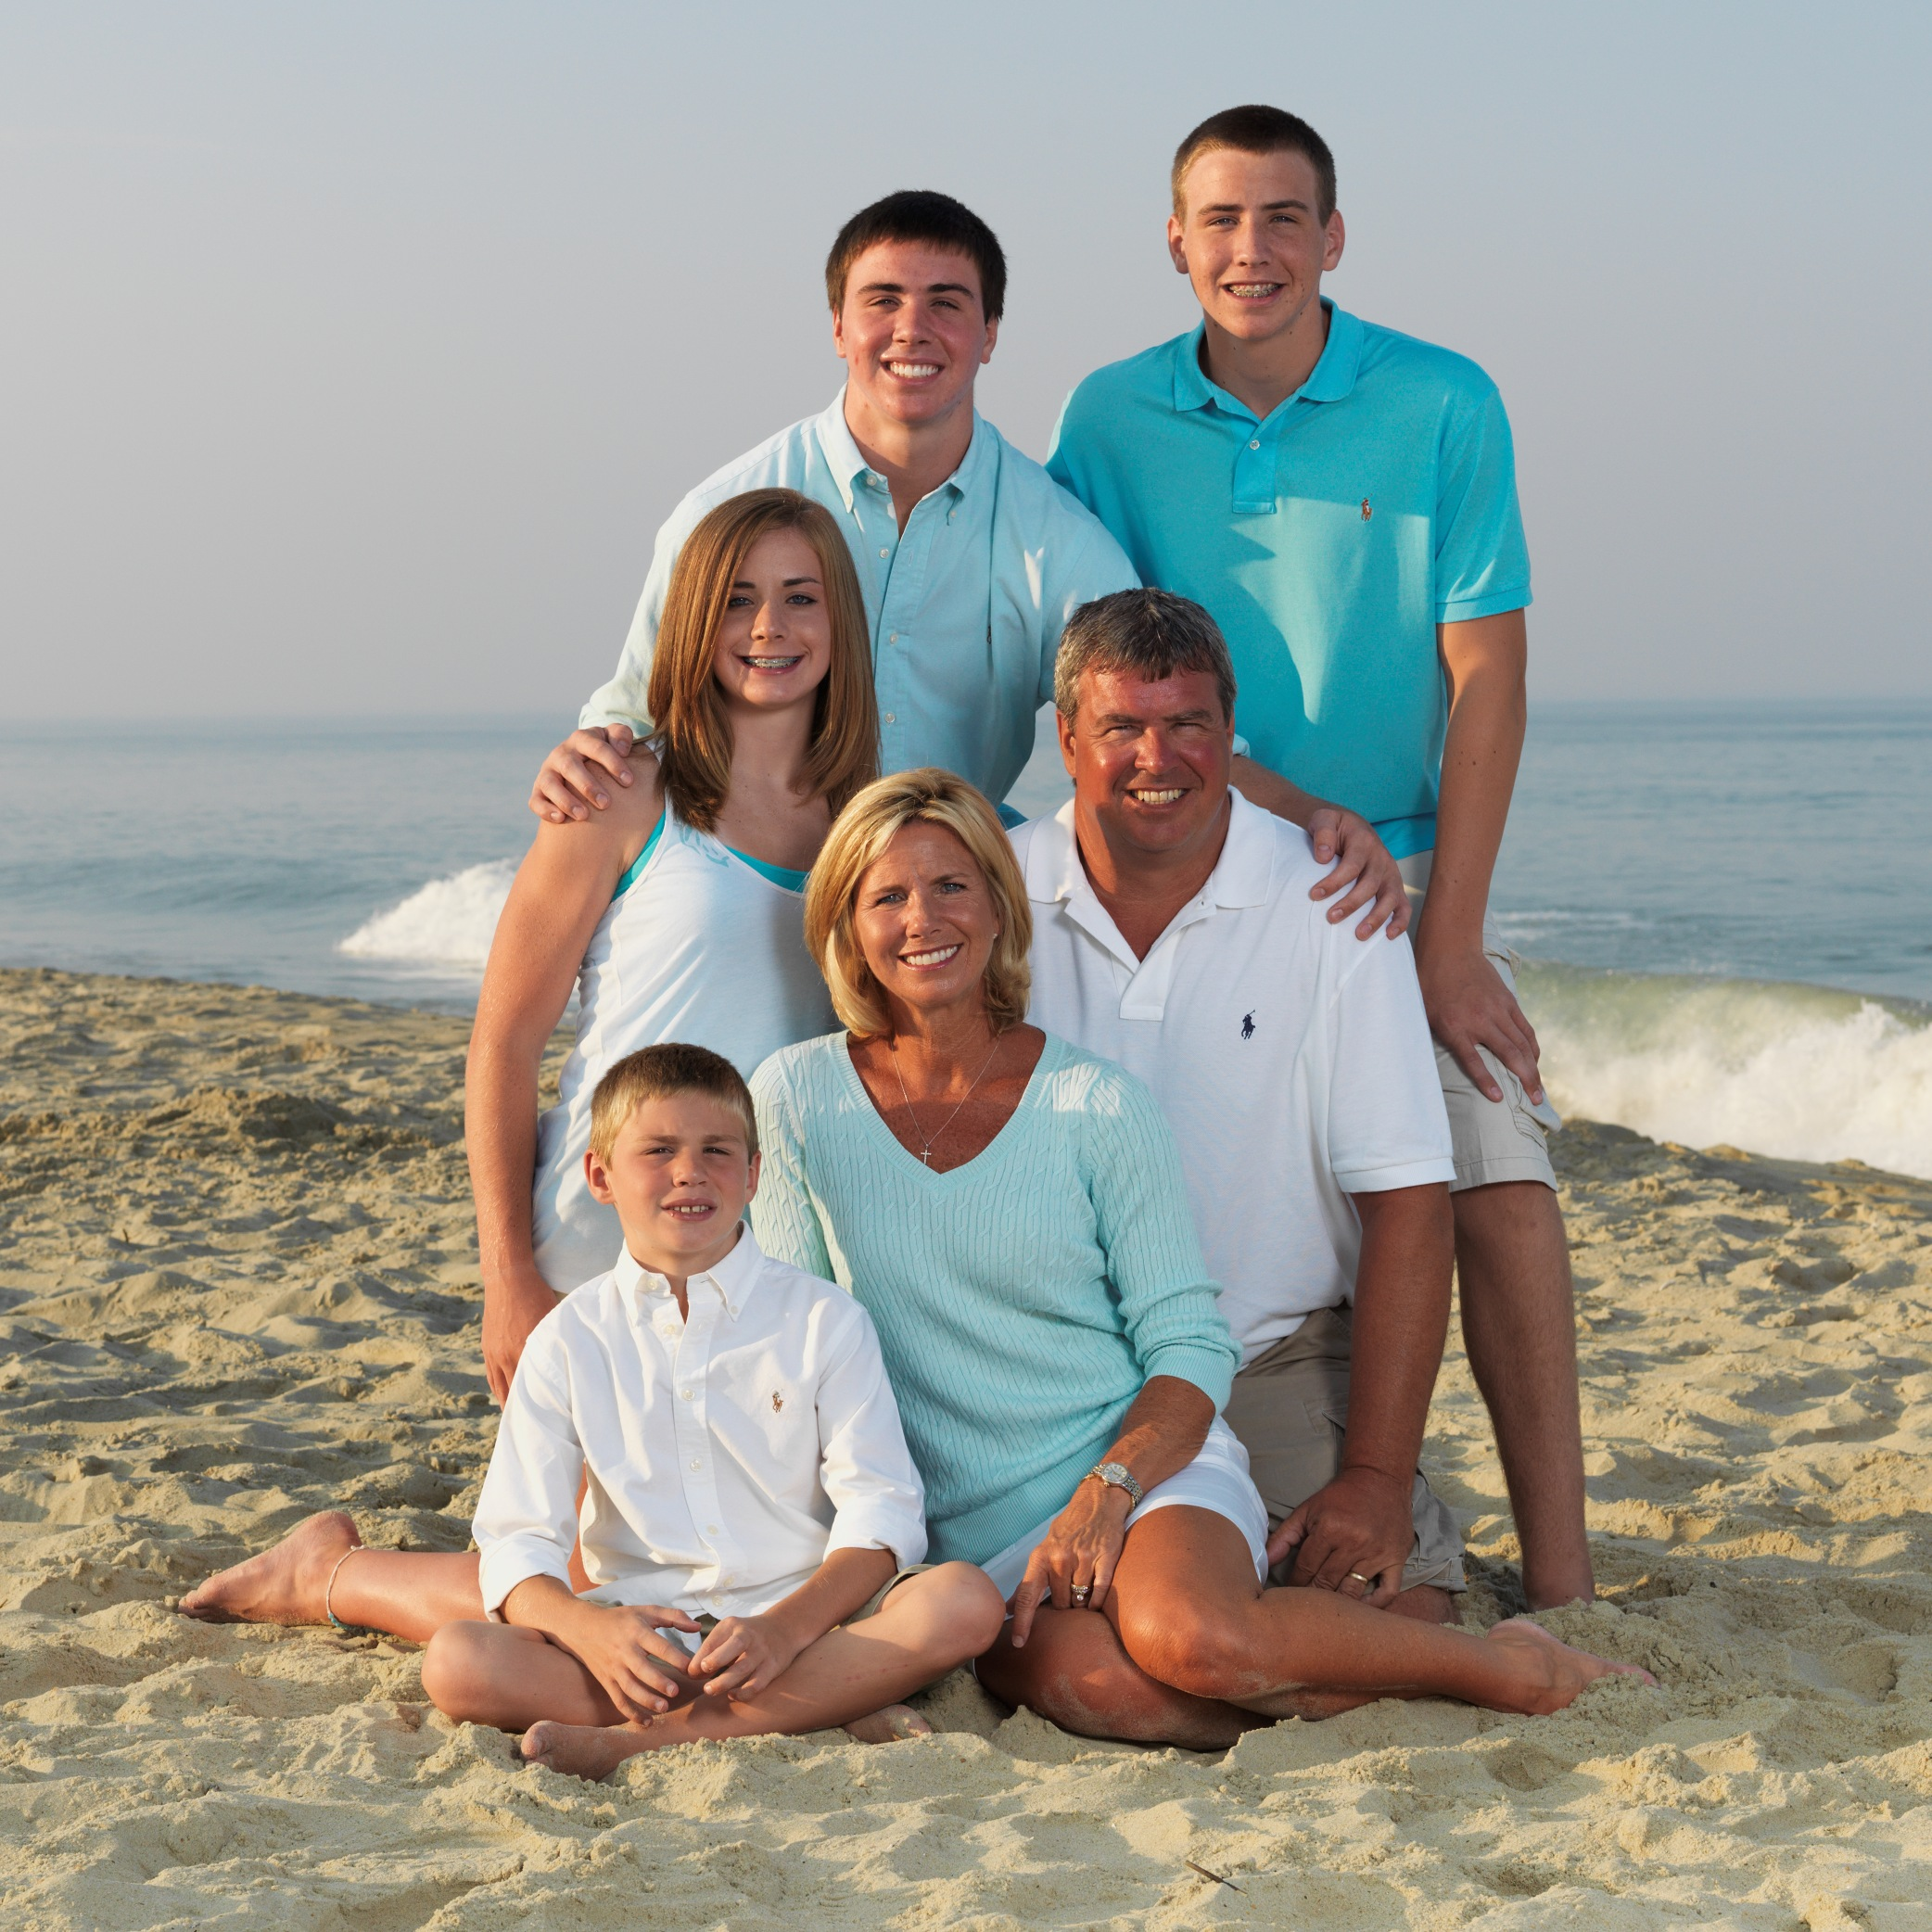 group photo ideas on the beach - Beach s Ideas Bing Family Beach